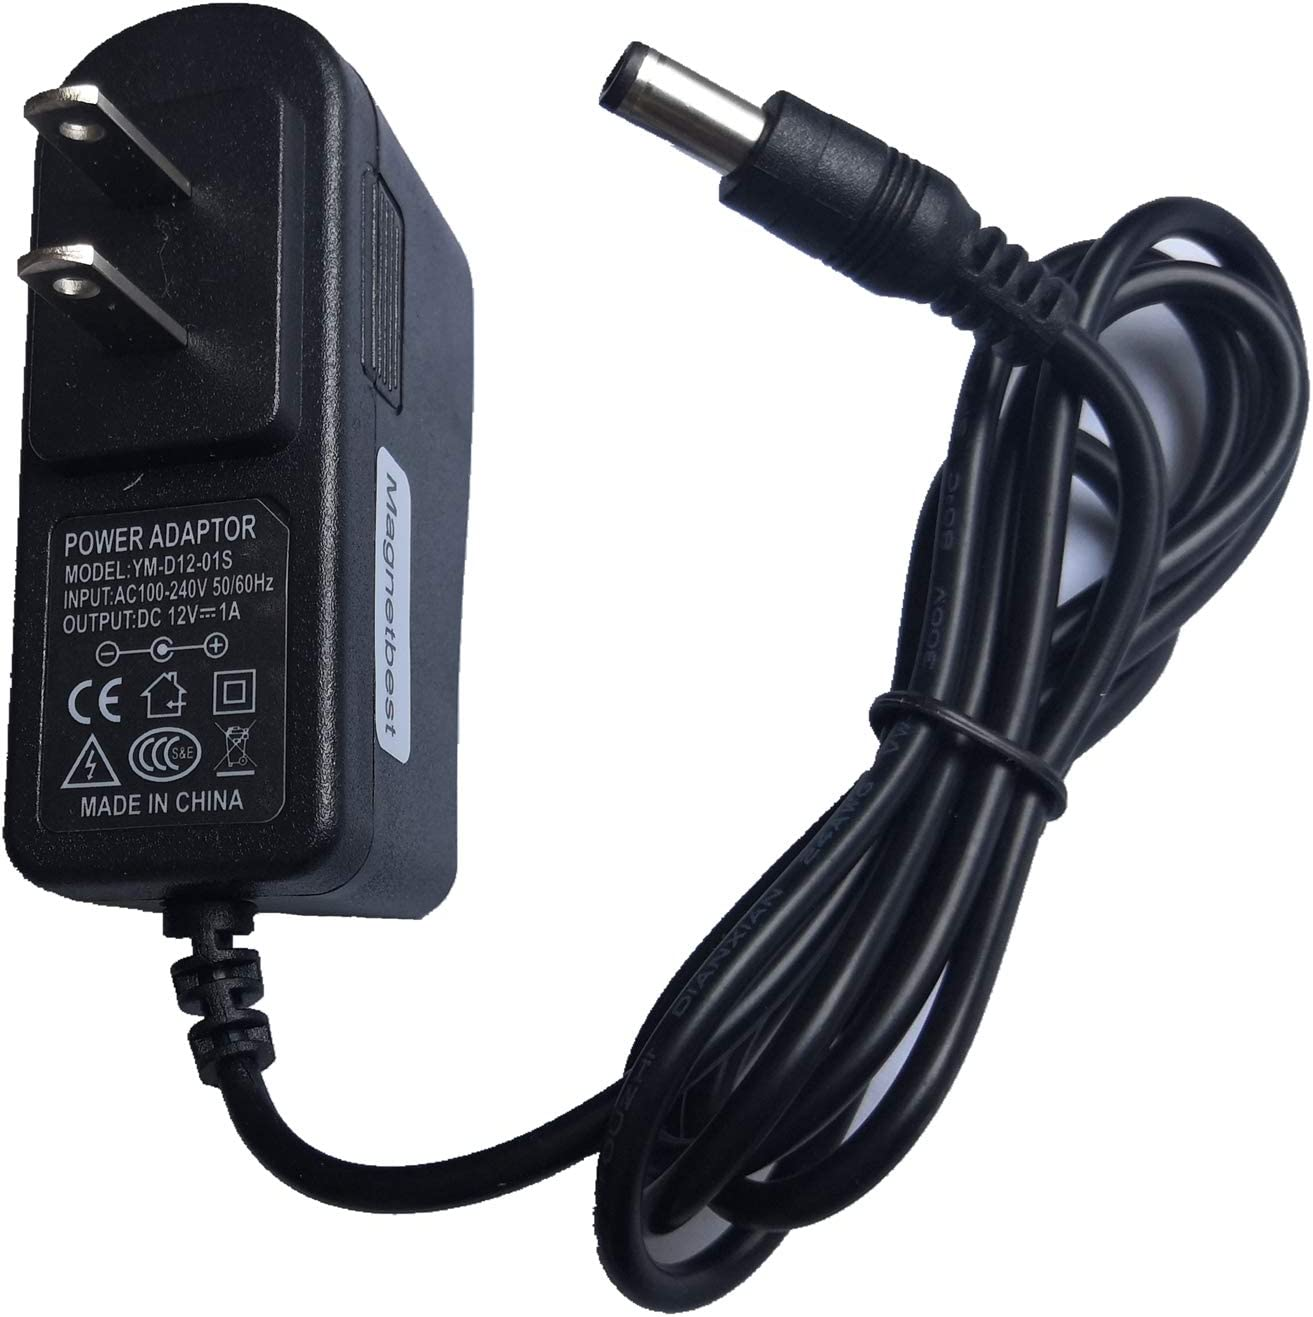 12V 0.833A AC/DC Power Adapter Charger 12V 1A for Bose Sound Link Mini Bluetooth PSA10F-120 Speaker